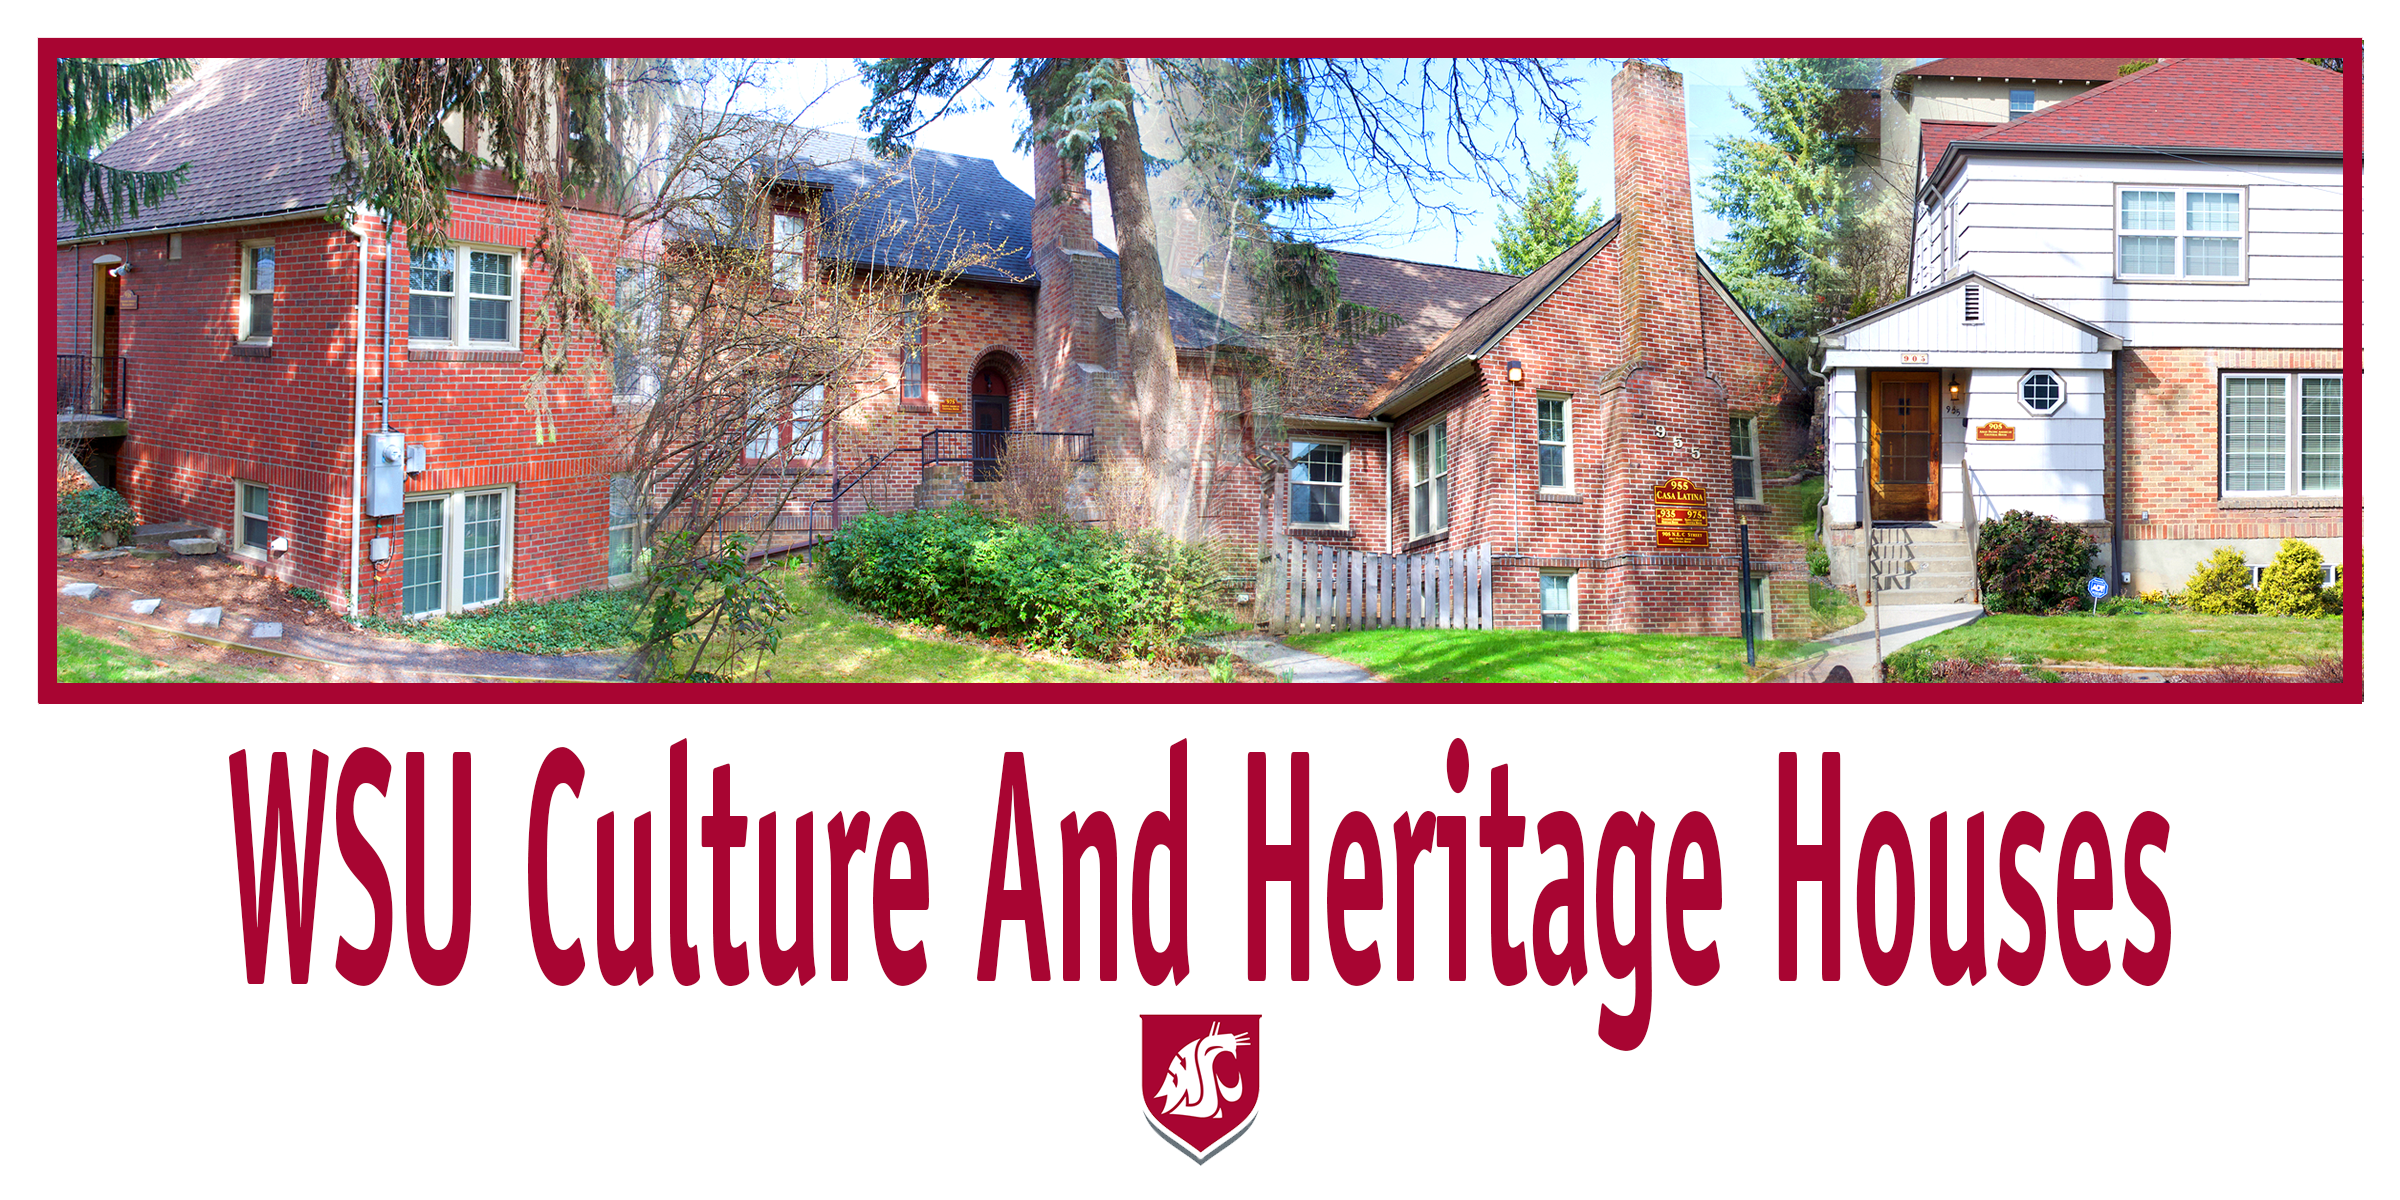 WSU Culture And Heritage Houses